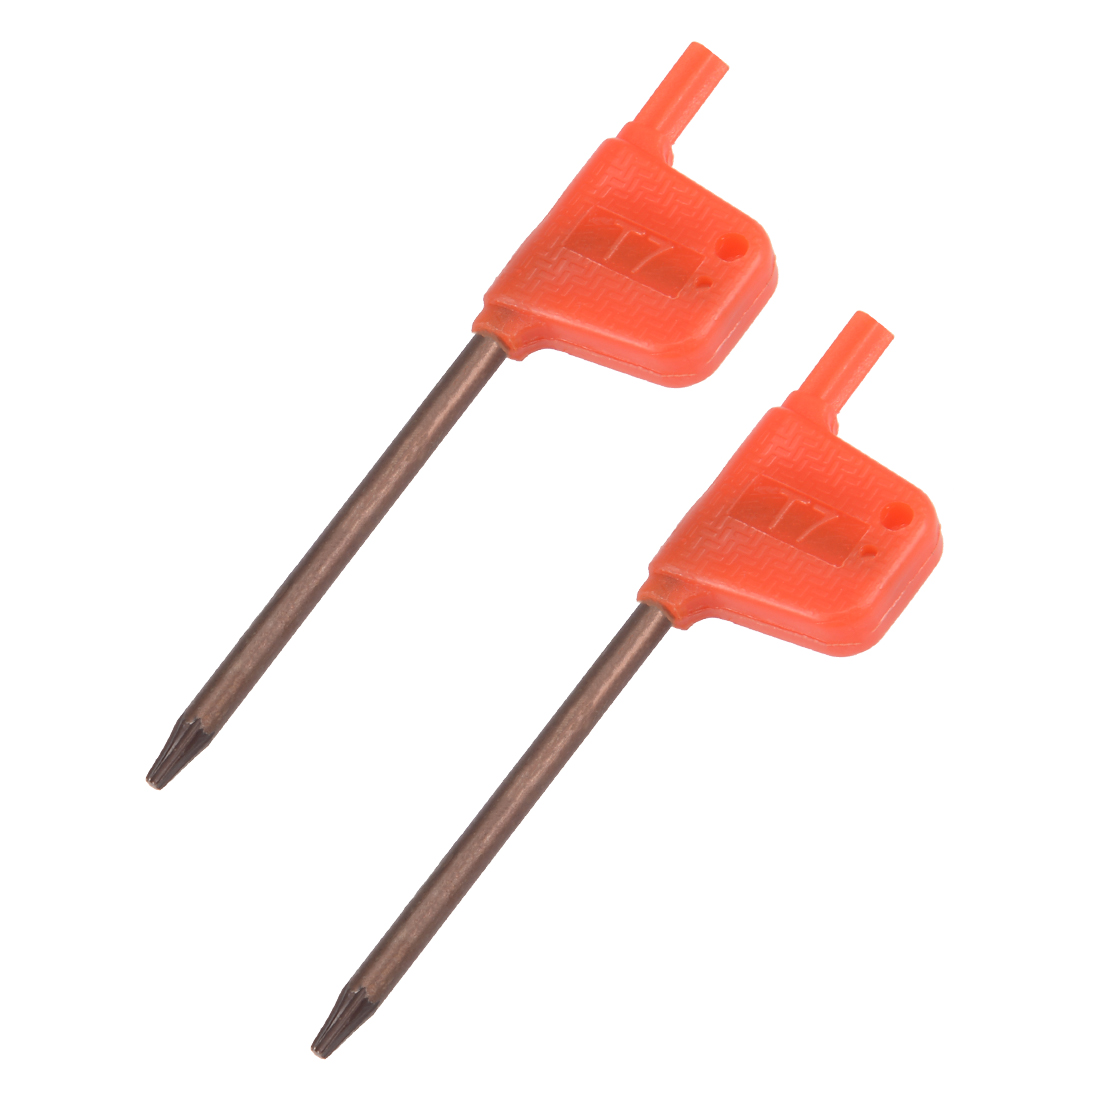 2PCS T7 S2 Flag Type Handle Driver Torx Key Wrench Spanner Screwdriver